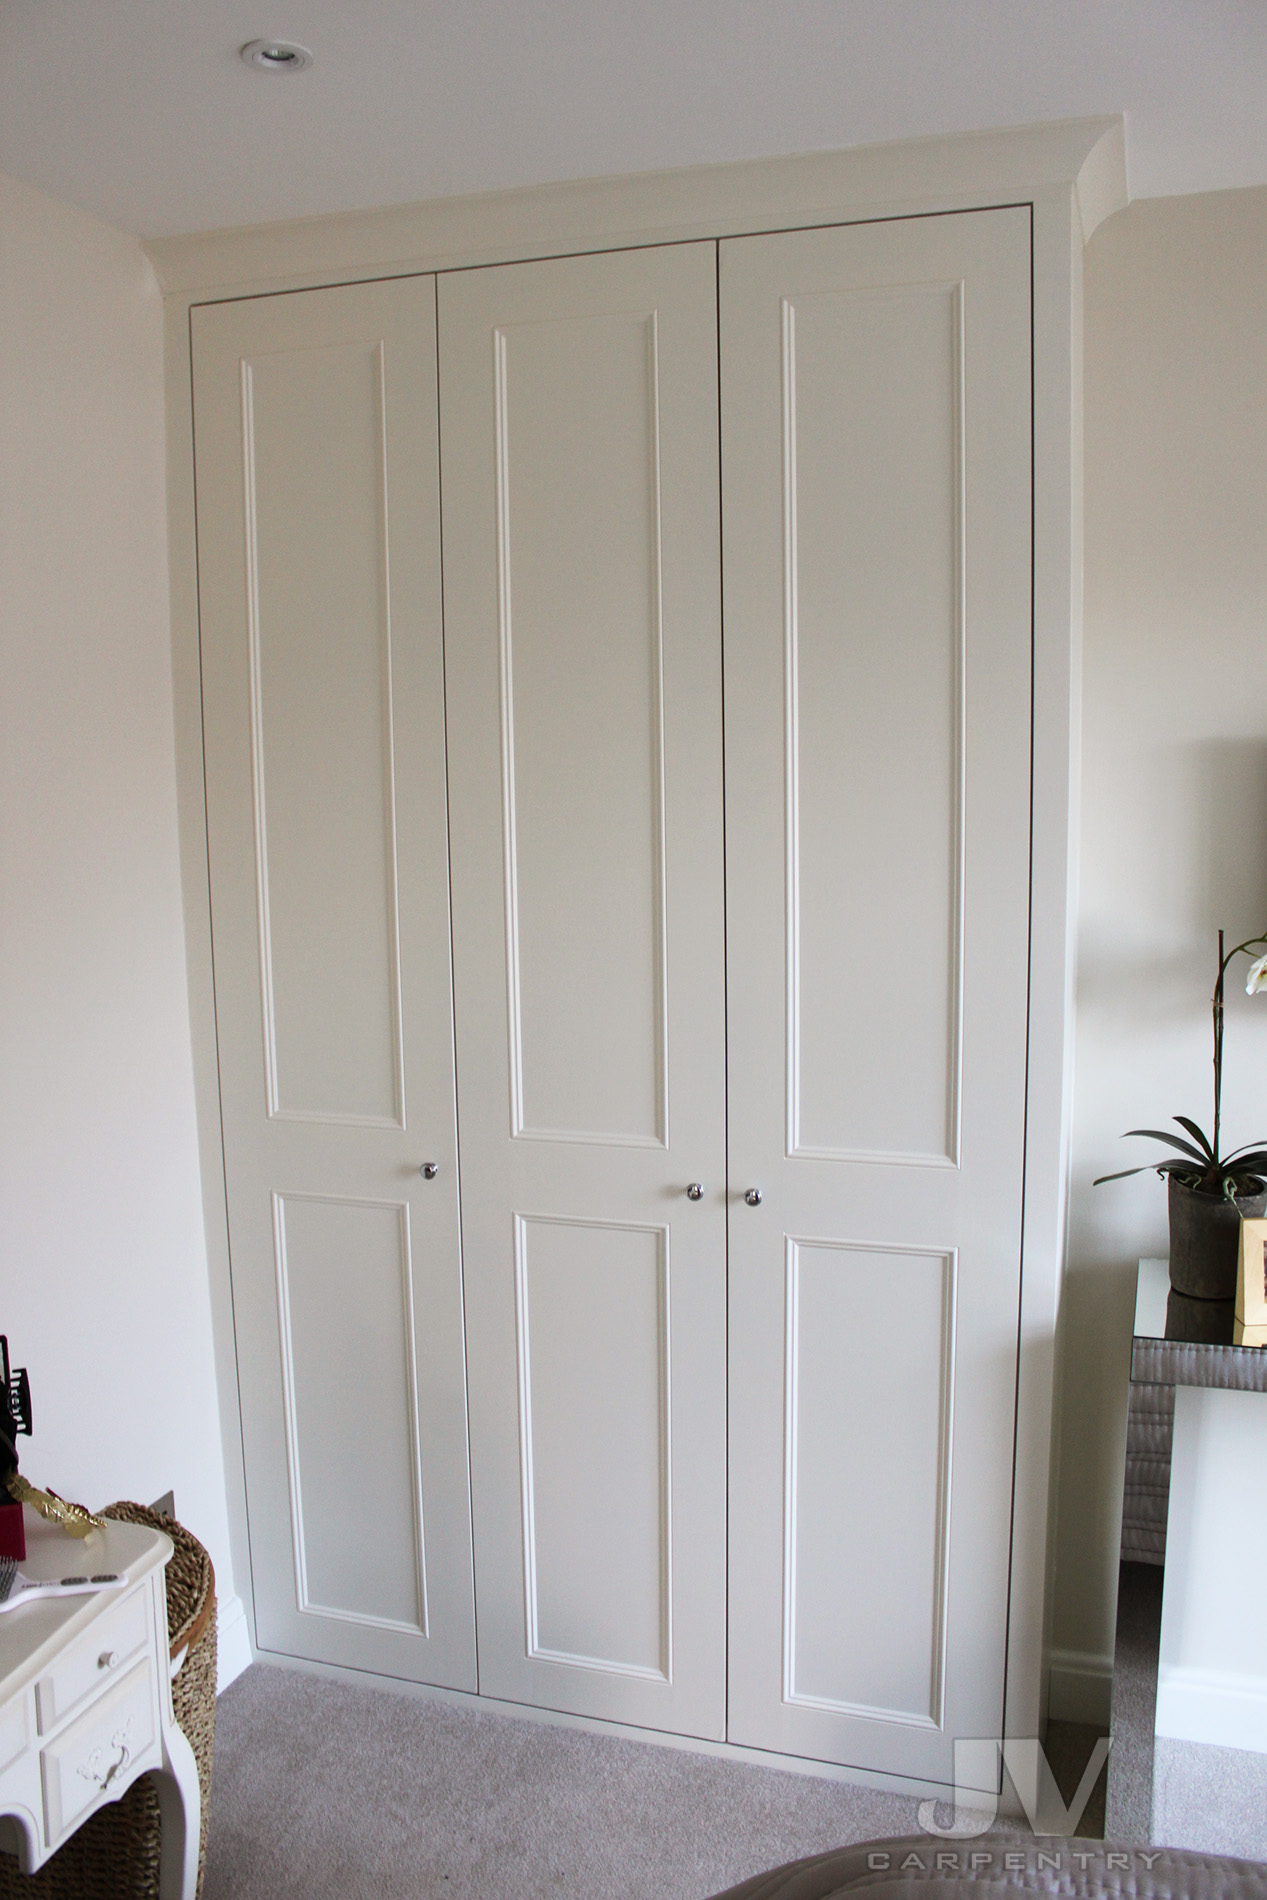 built in wardrobe with tree doors from floor to the ceiling.